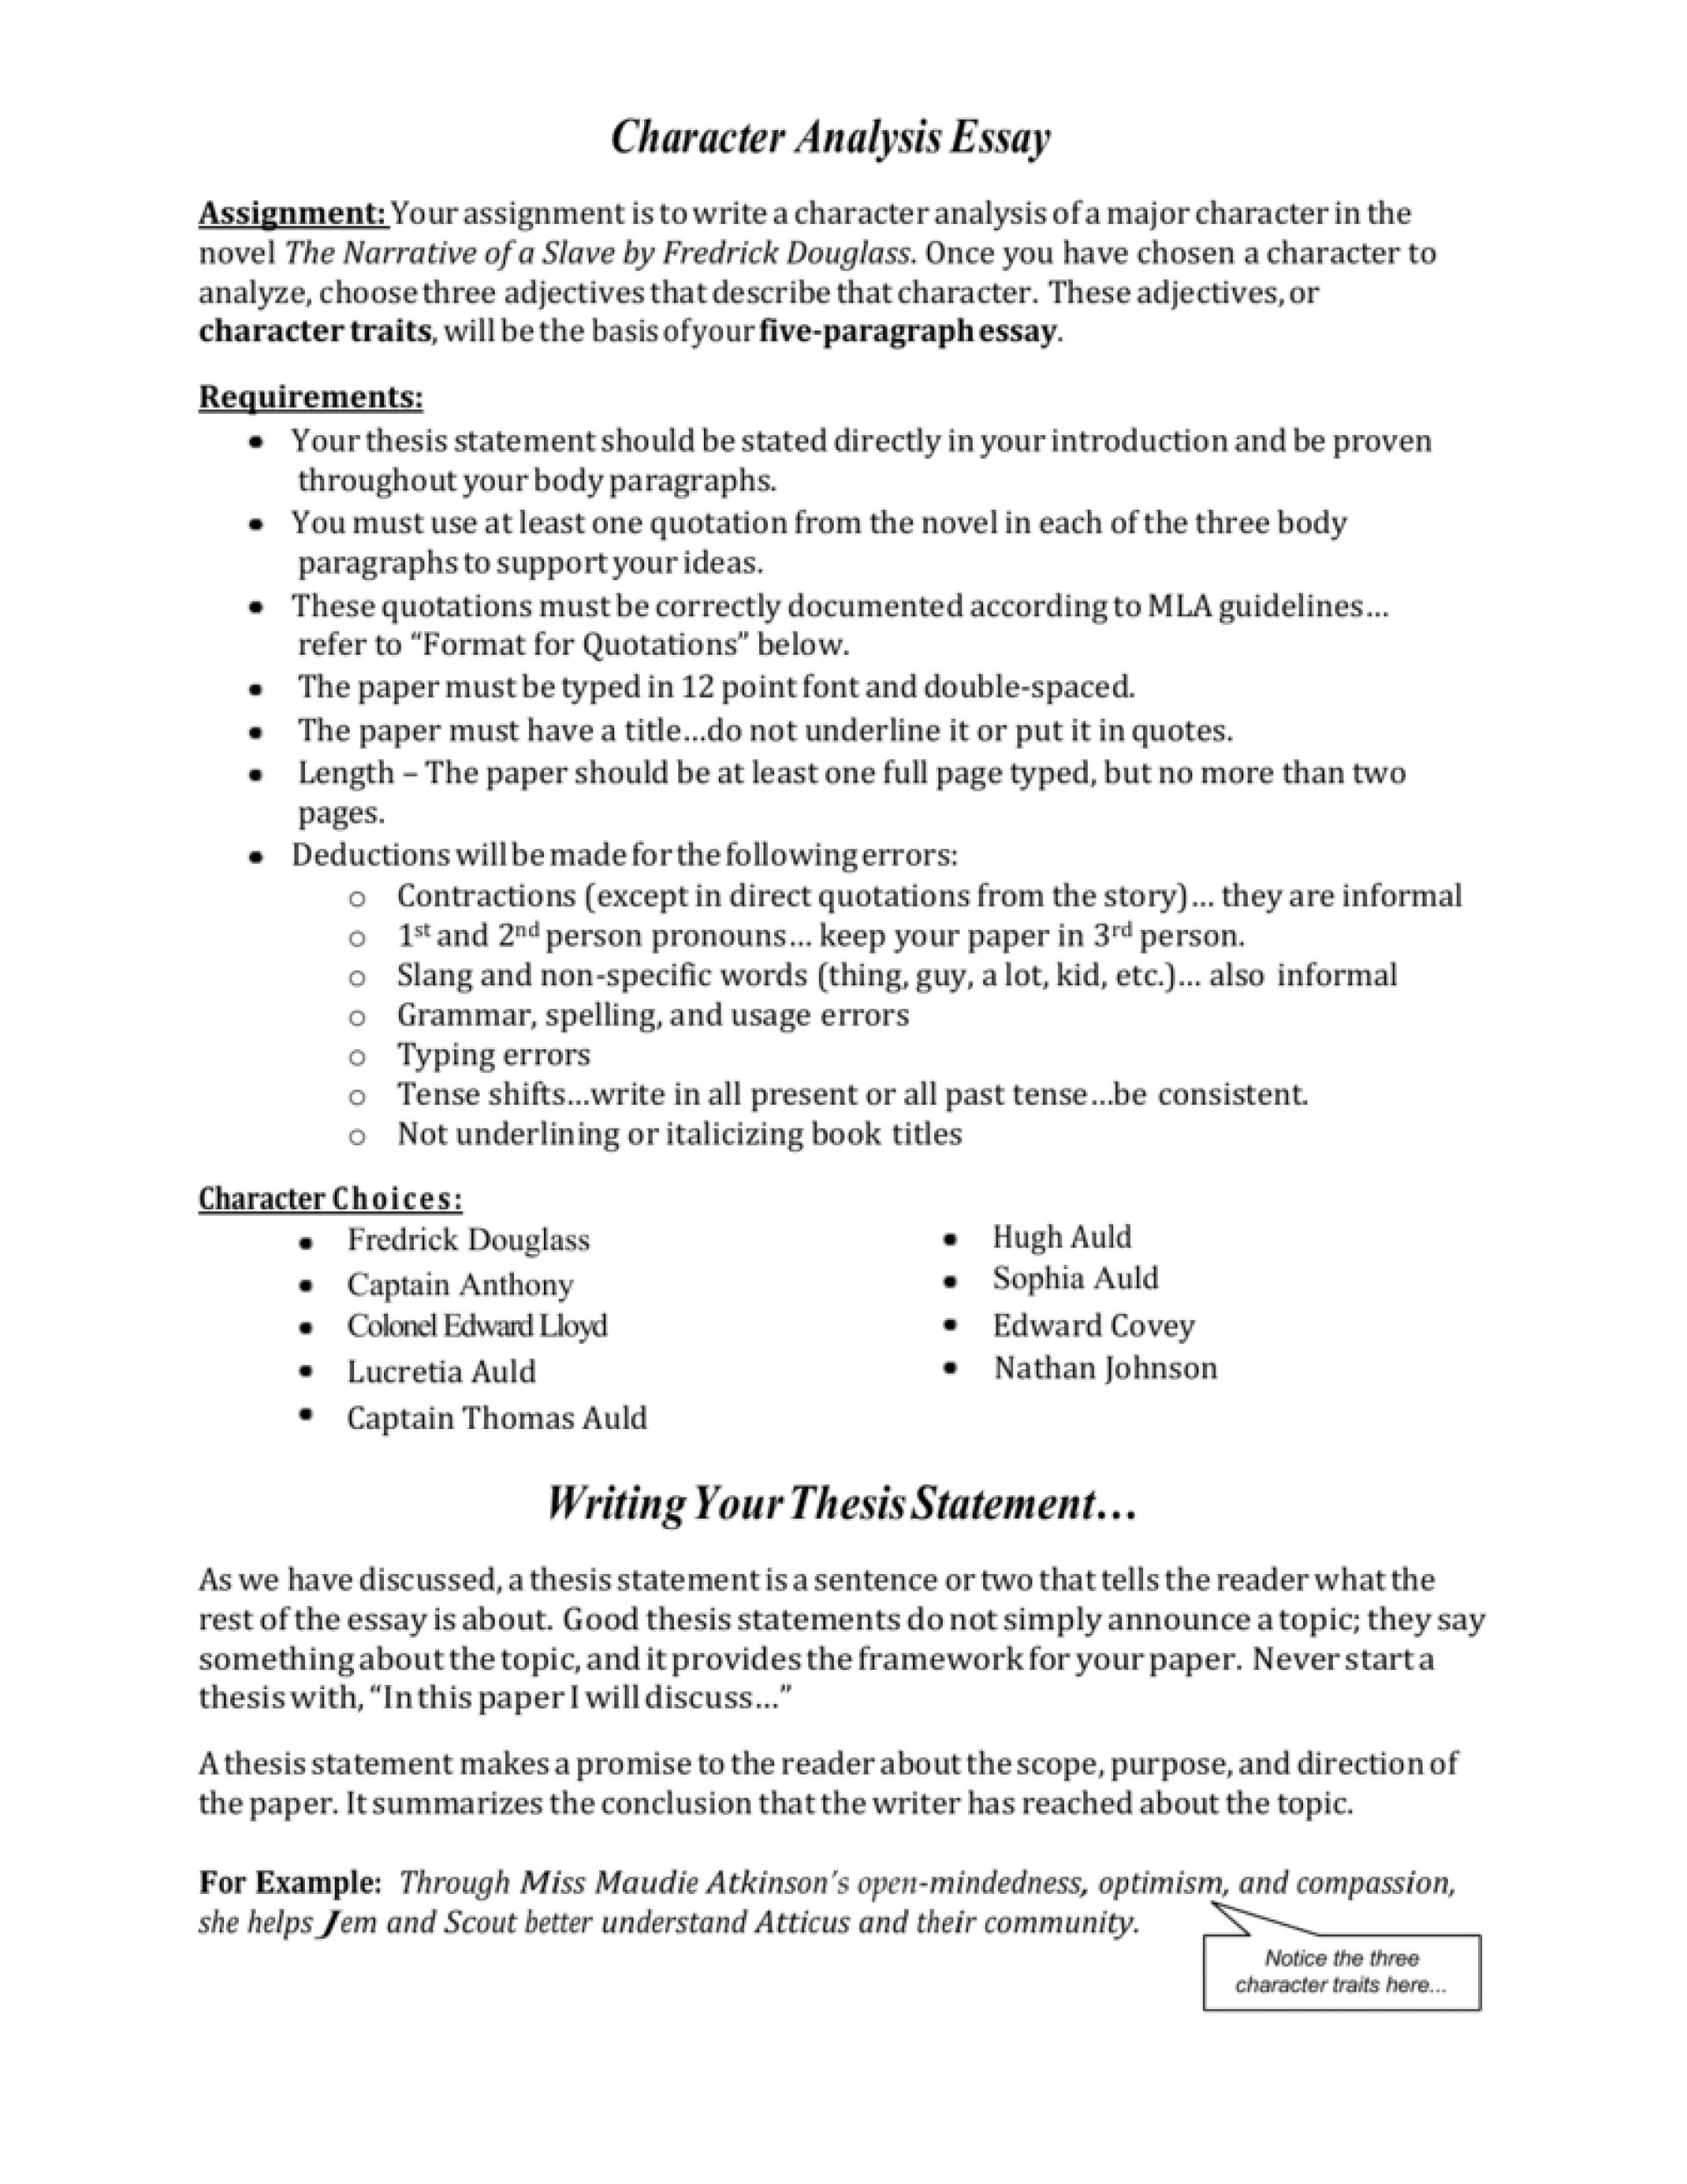 Elements of a research paper middle school